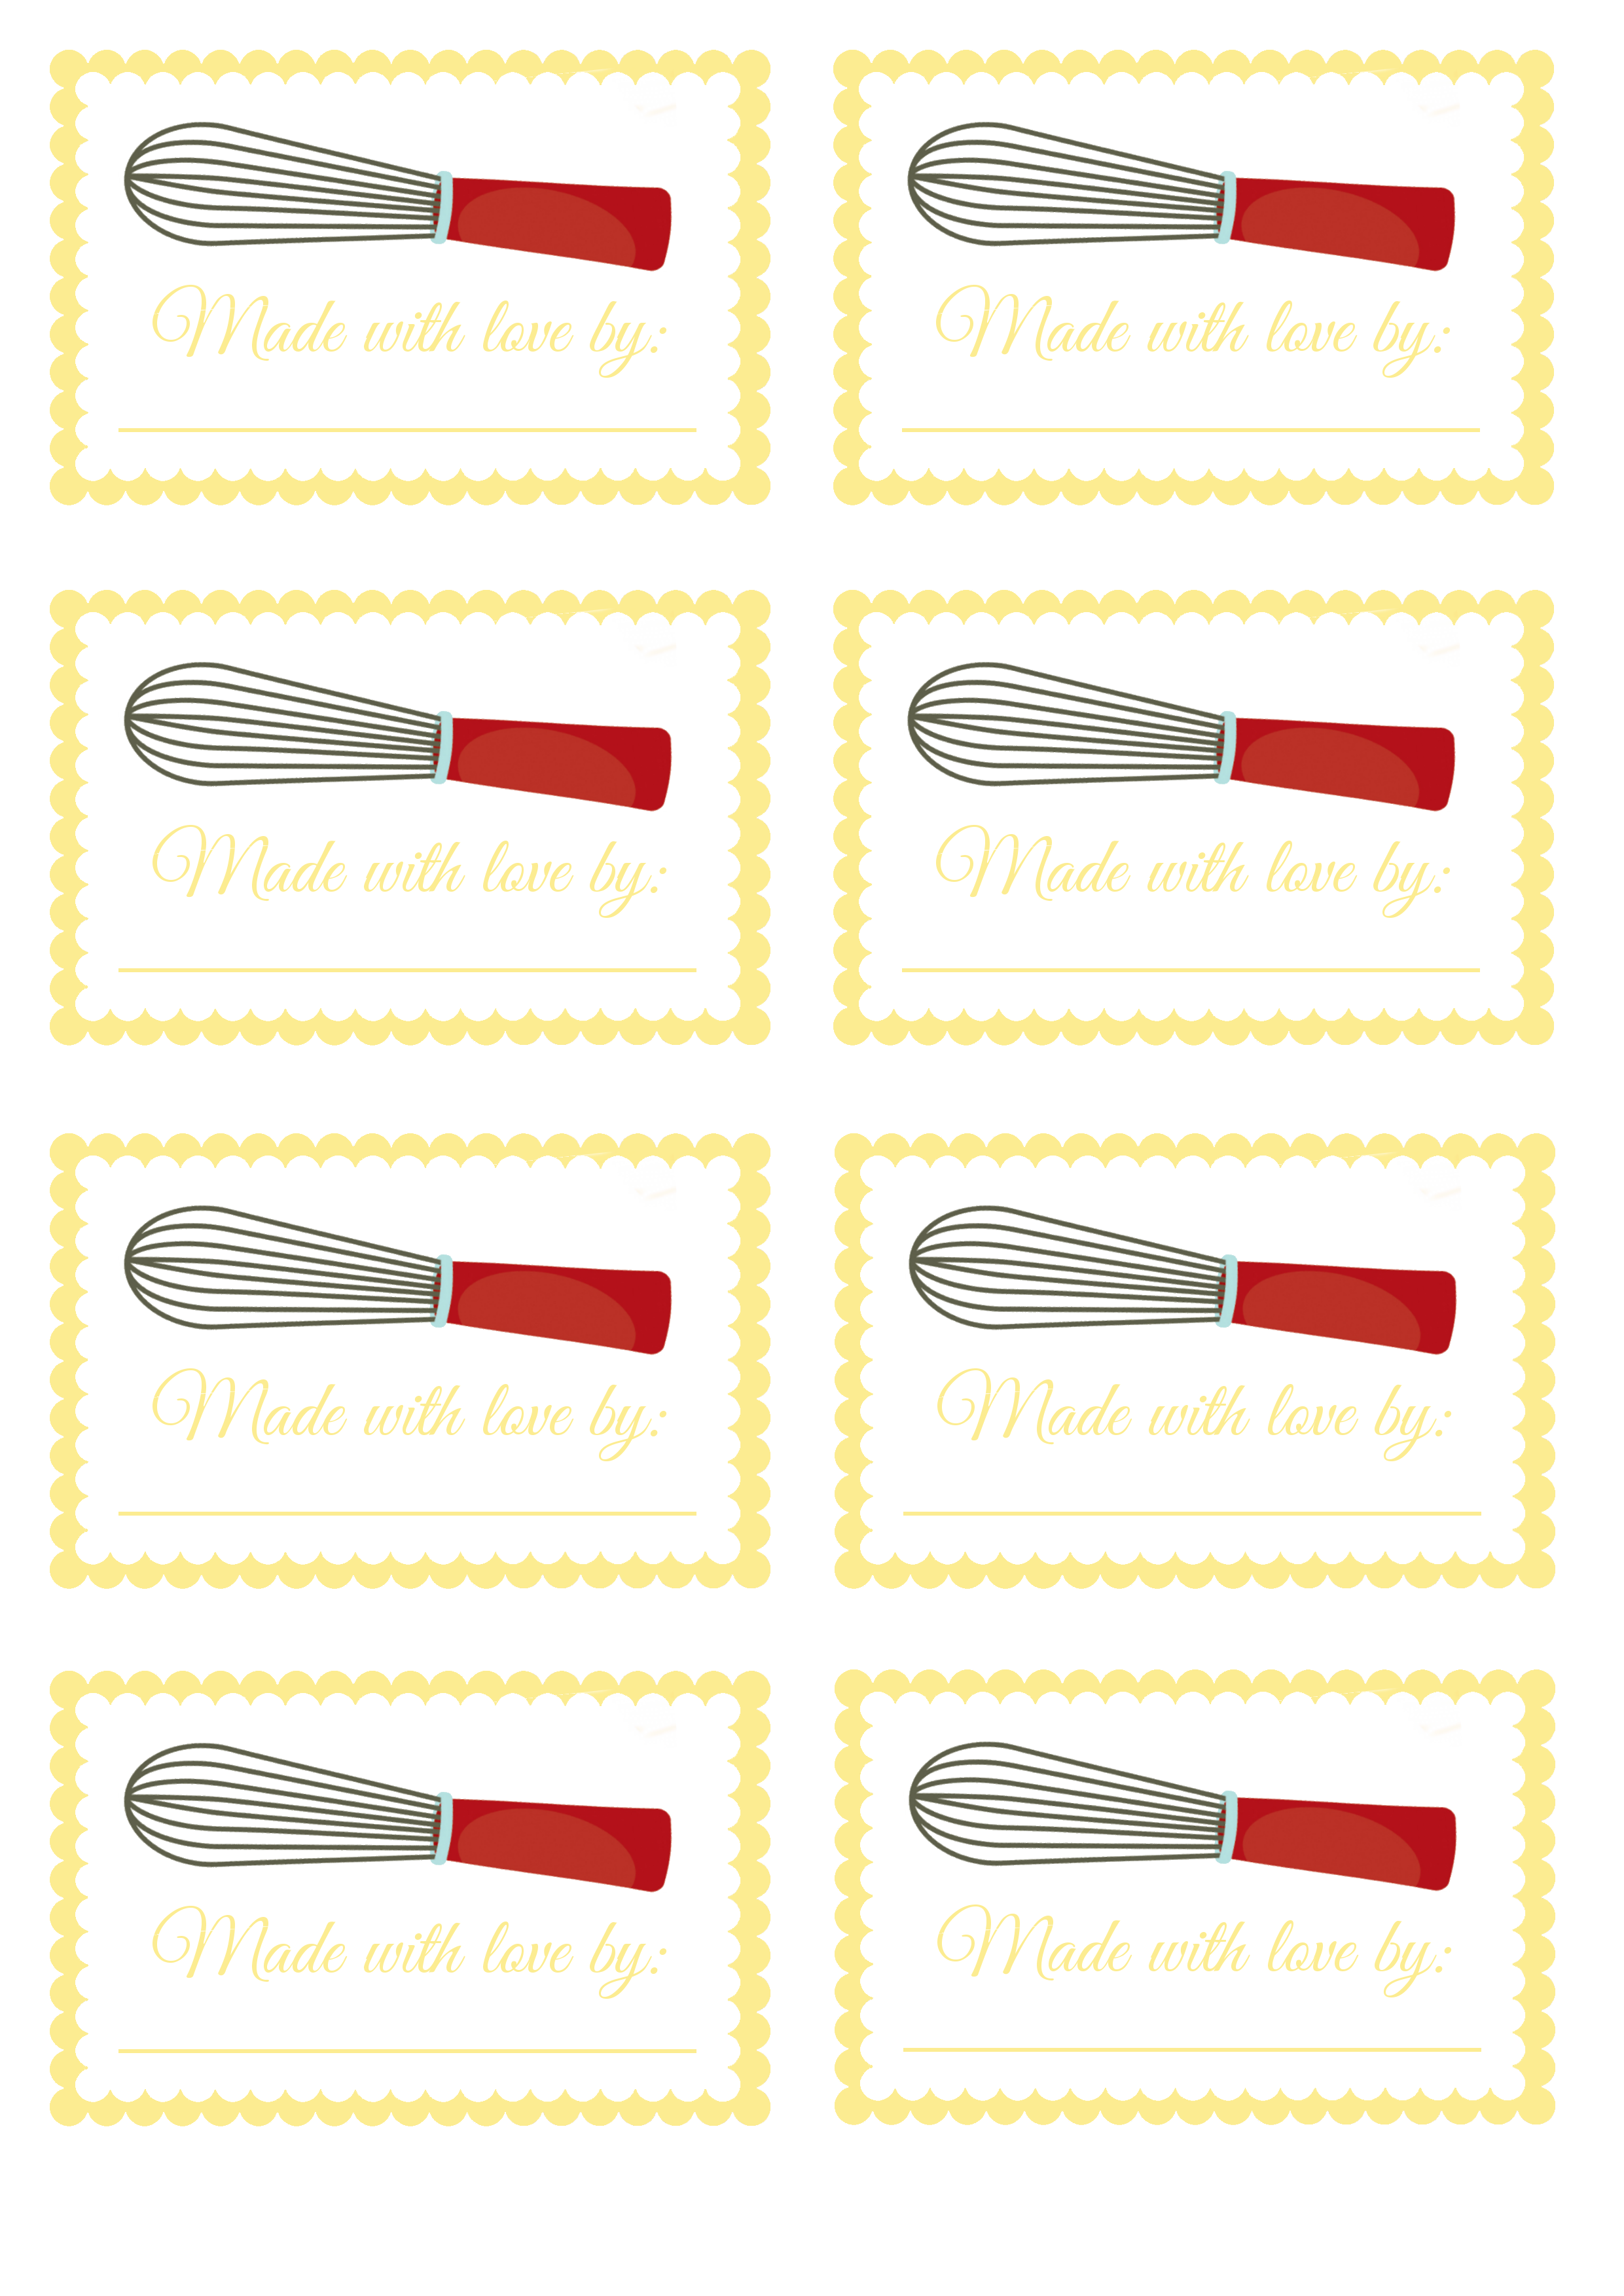 Made With Love By Homemade Food Labels